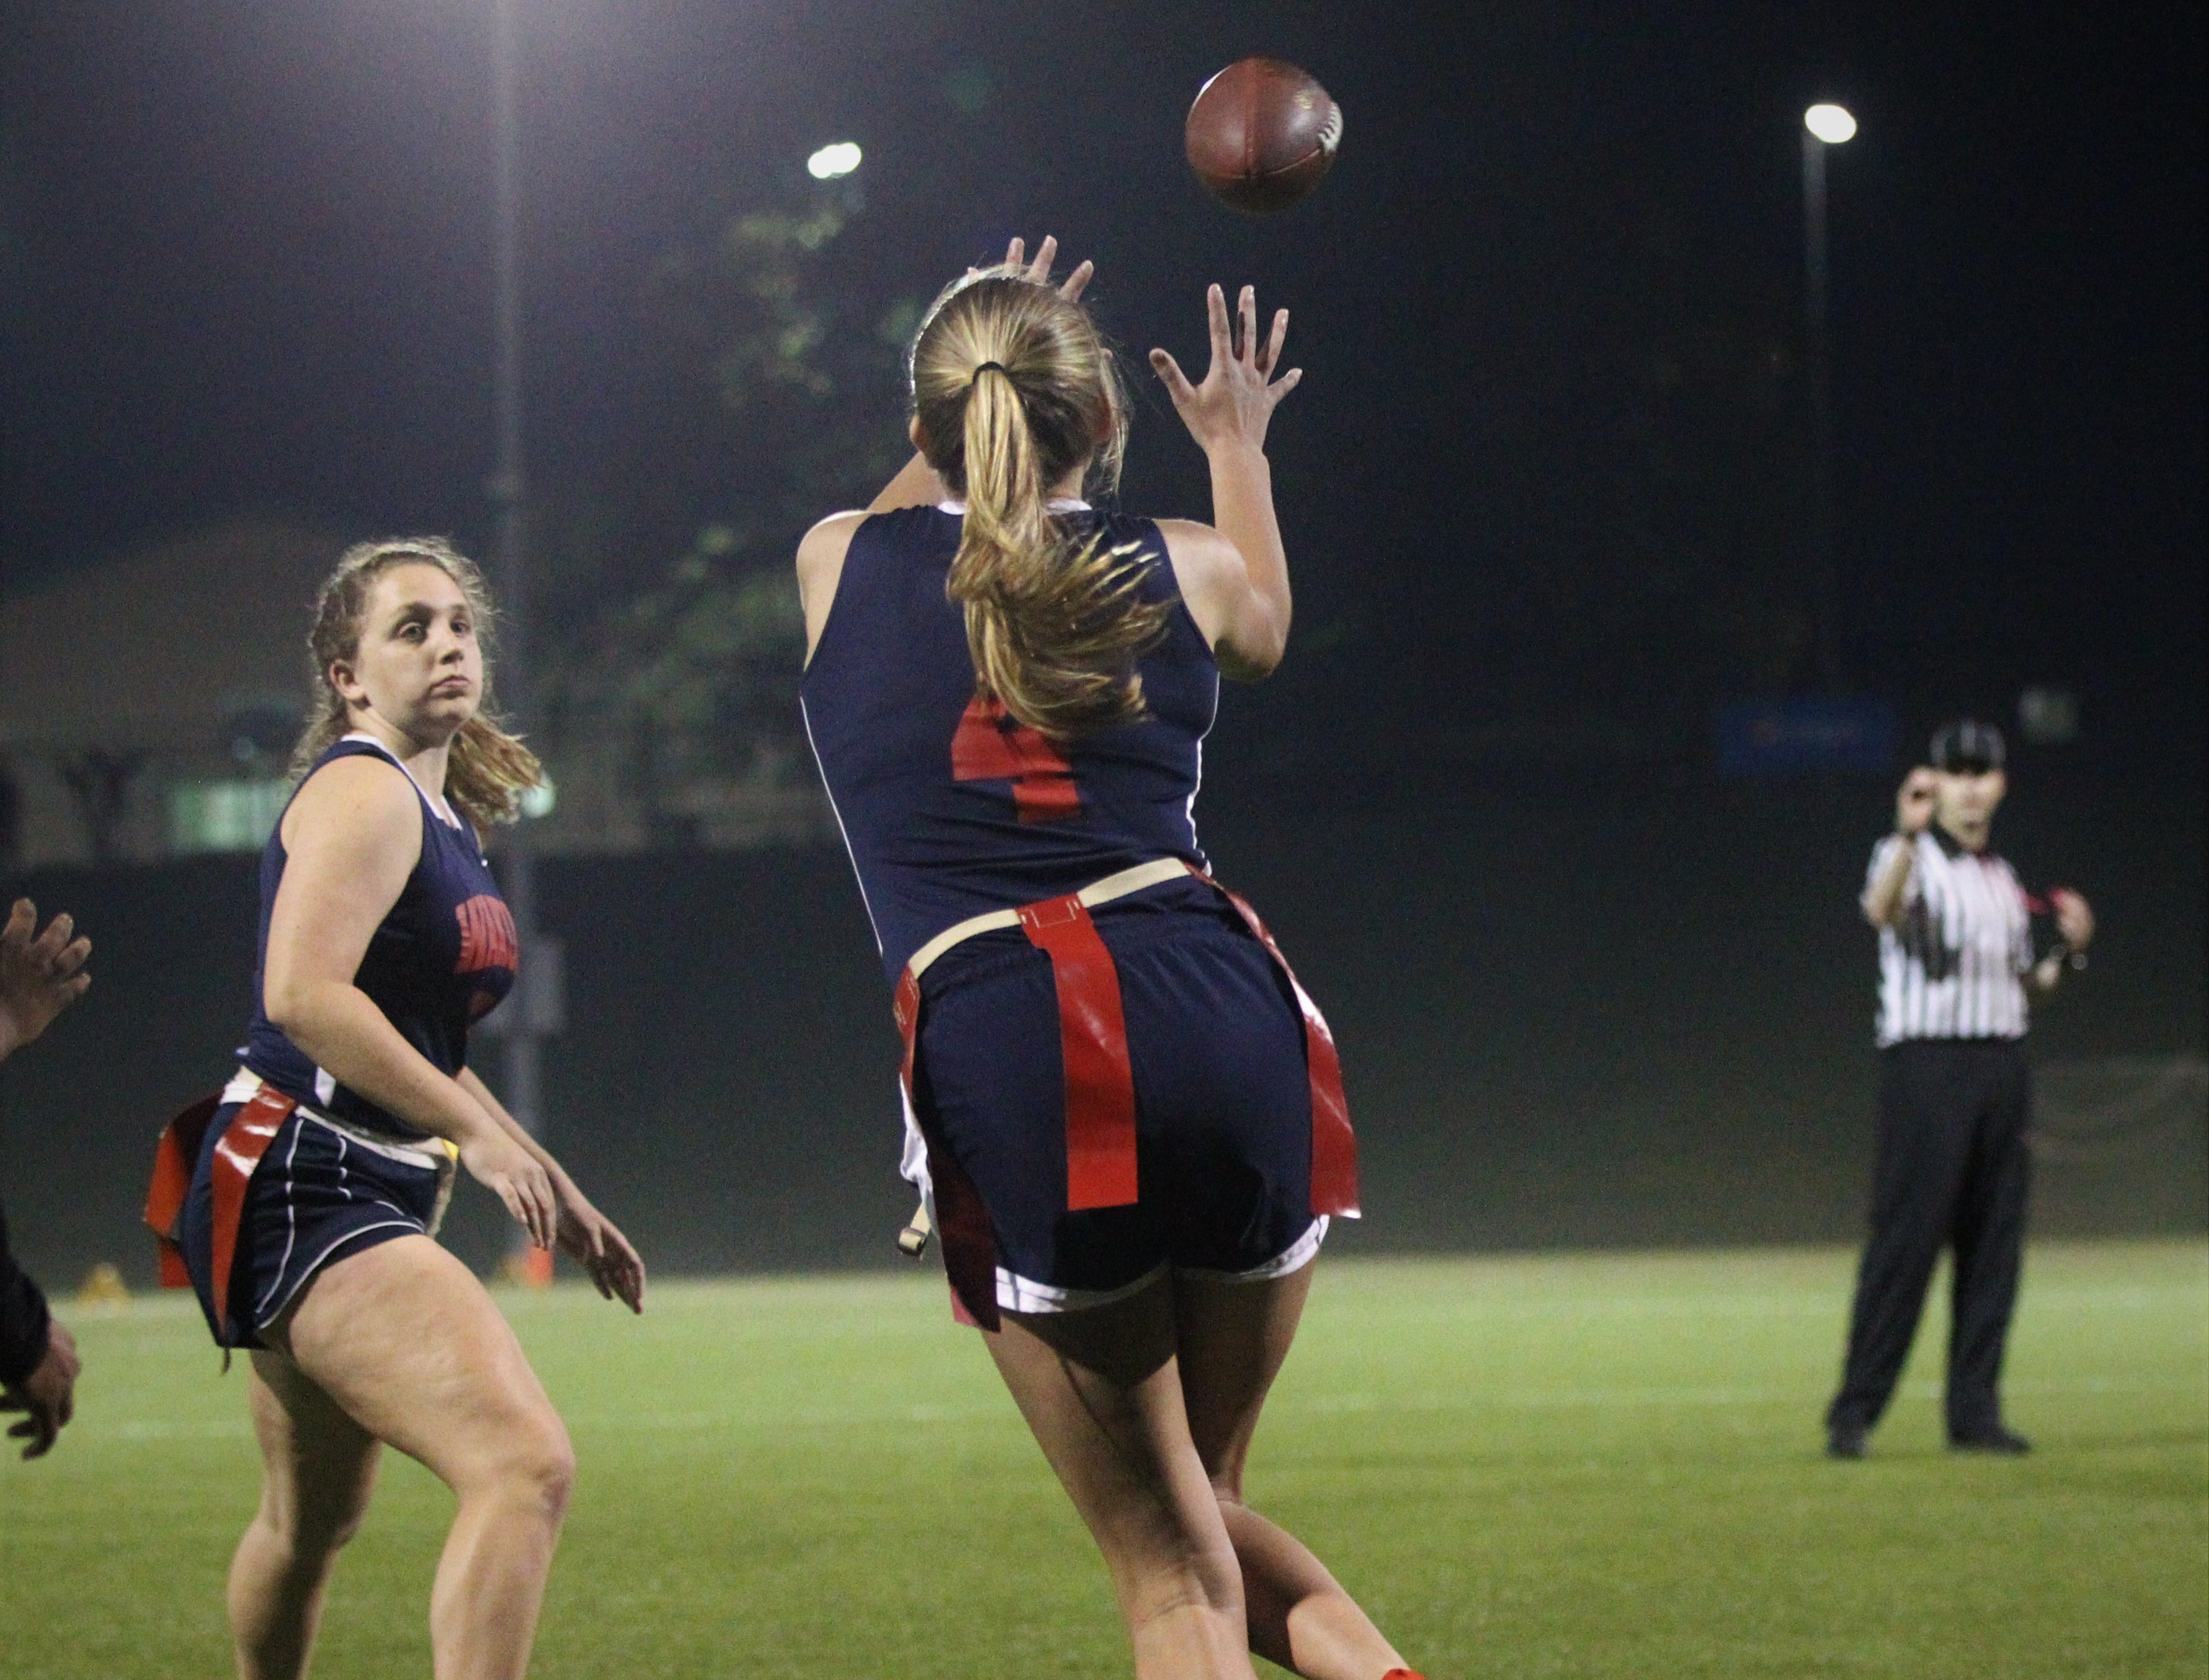 Wakulla and Gadsden County play during the 2019 flag football preseason classic at Florida A&M's intramural turf fields on Feb. 27, 2019.